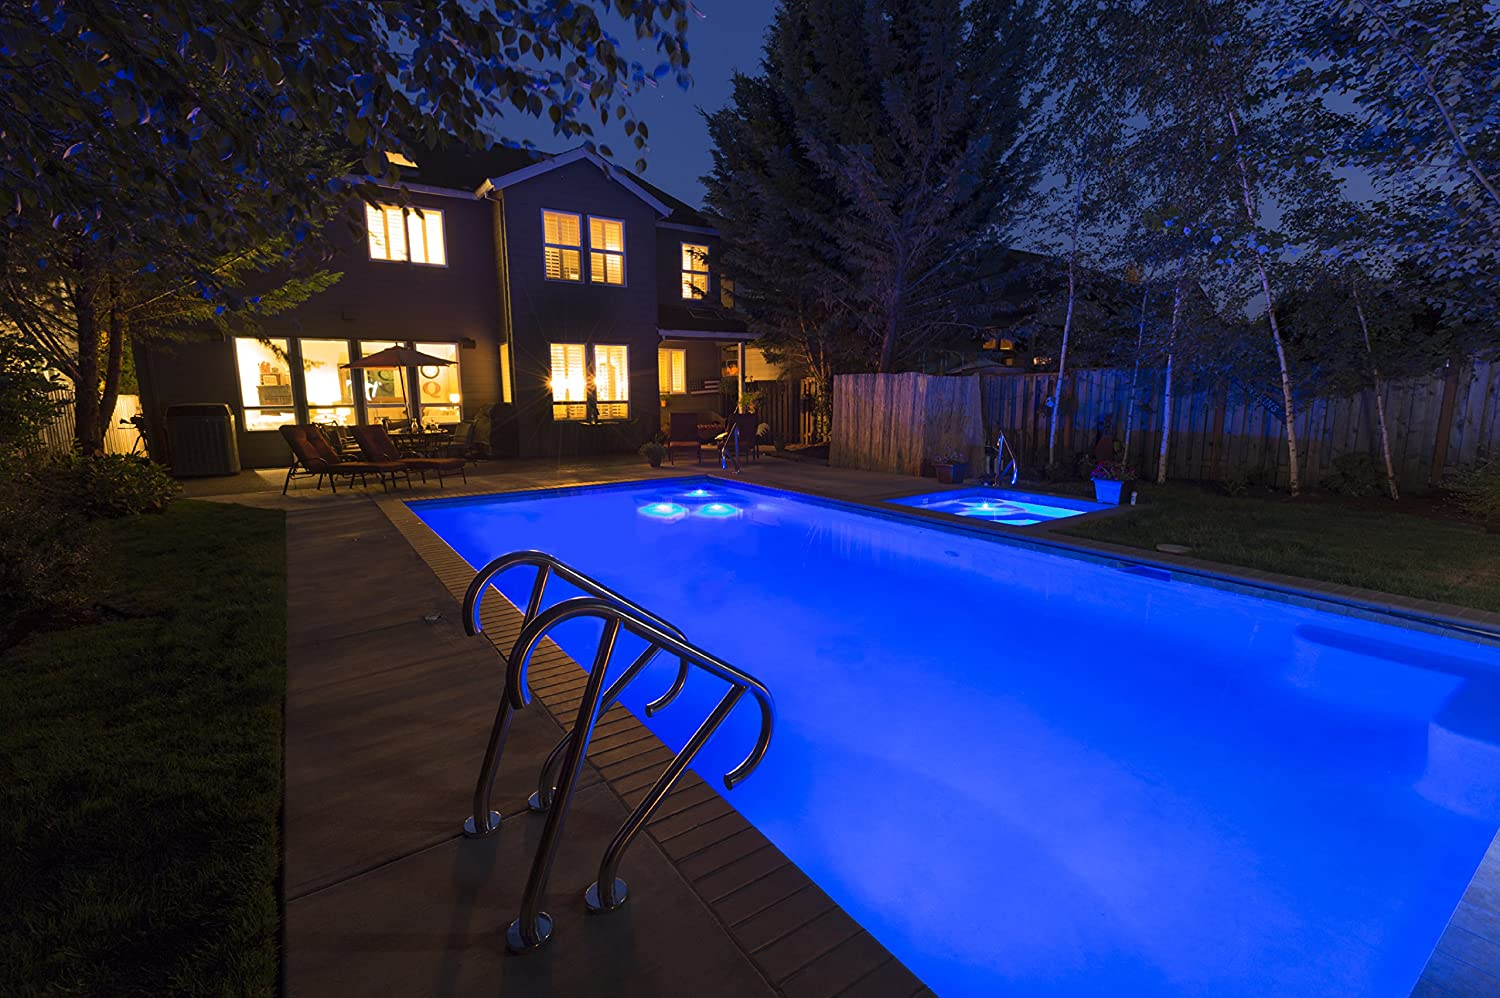 Amazon.com : S.R.Smith FLED-C-TR-50 12V & 5W Treo LED Pool Light with Cord,  50', Red/Blue/Green : Garden & Outdoor